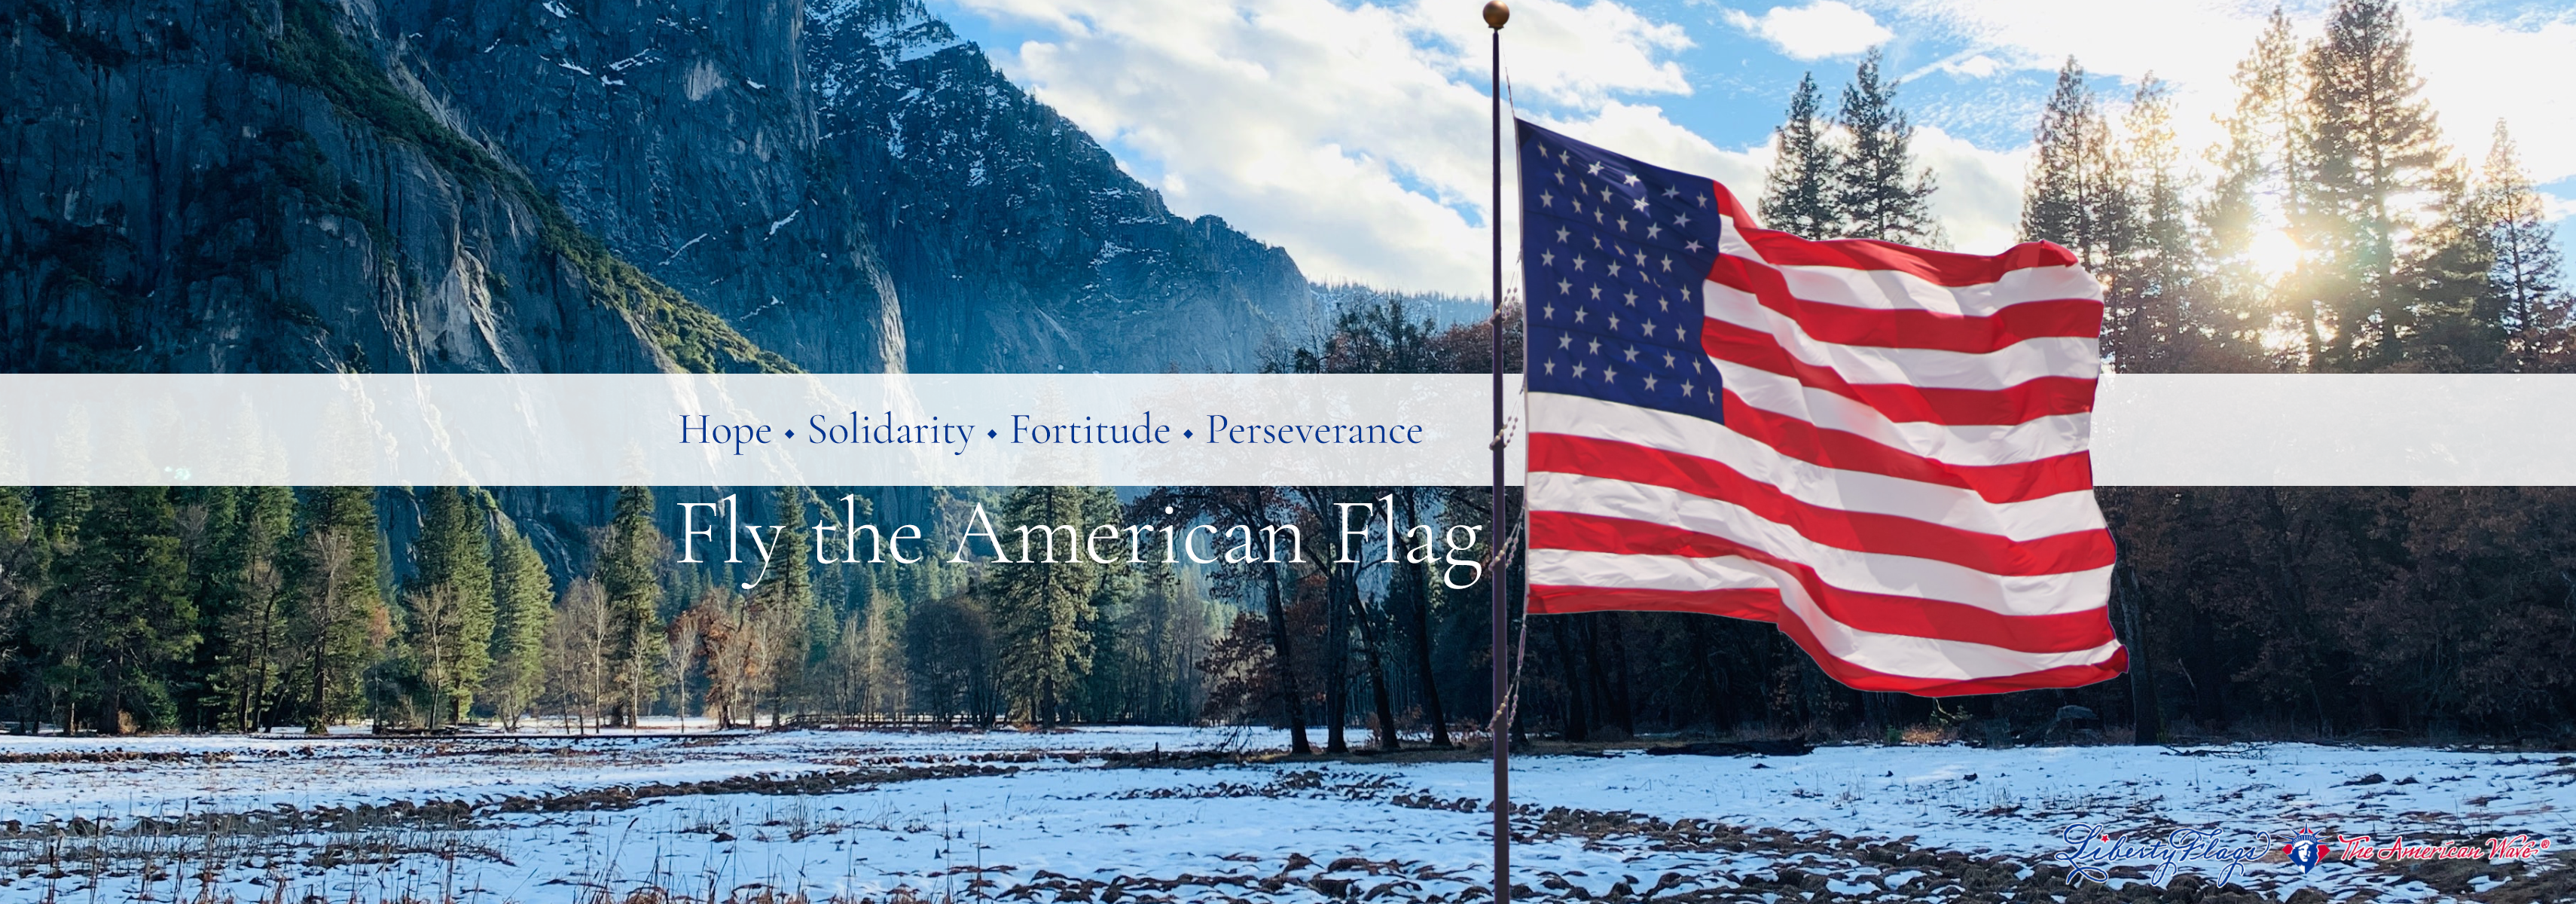 100% American-made Rugged Outdoor American Flags from LIBERTY FLAGS, The American Wave®